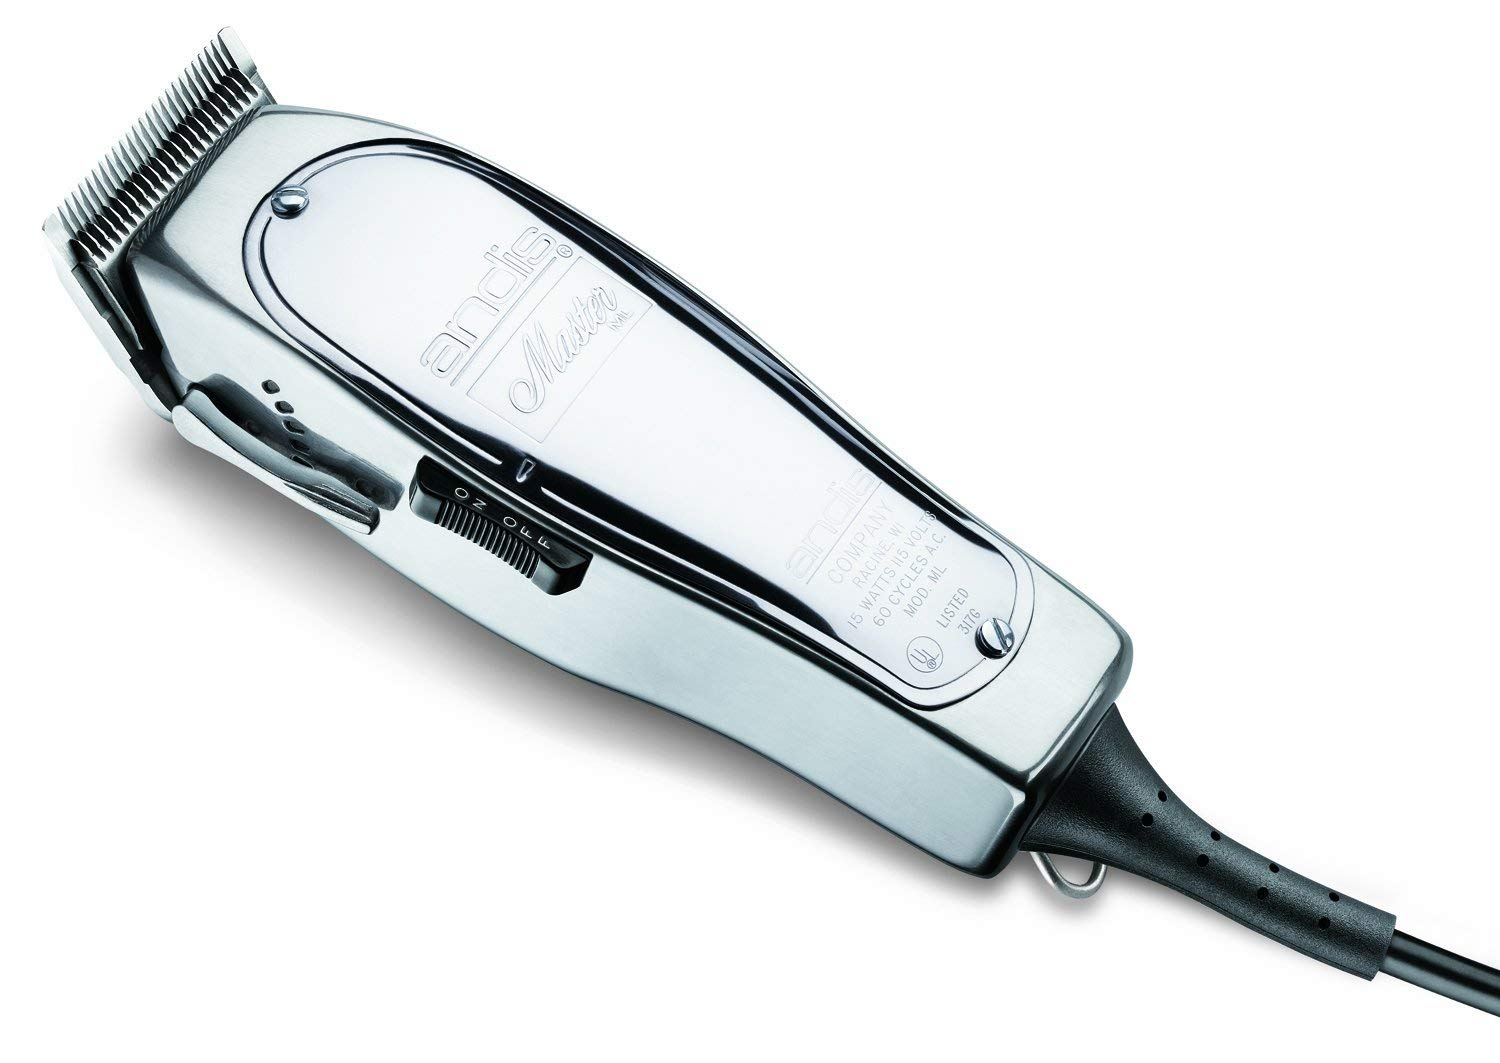 Andis Master 15-Watt Adjustable Blade Hair Clipper, Silver (01557)